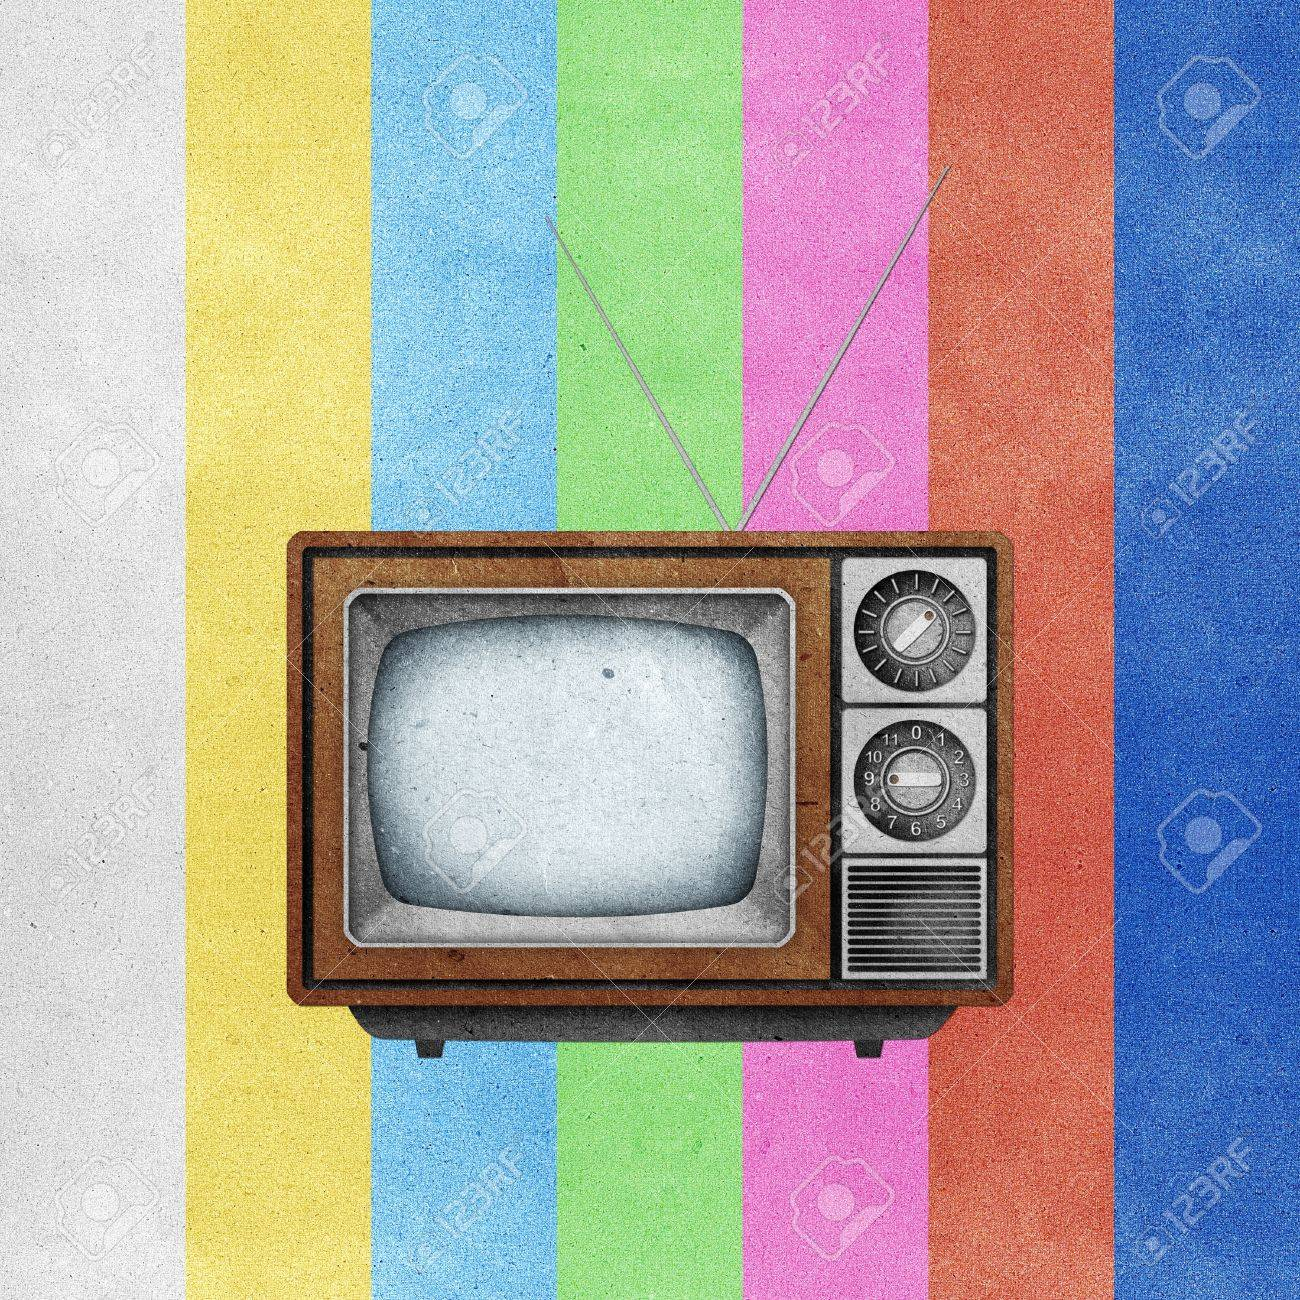 Television ( TV ) icon recycled paper stick on grunge retro screen color background Stock Photo - 10275399